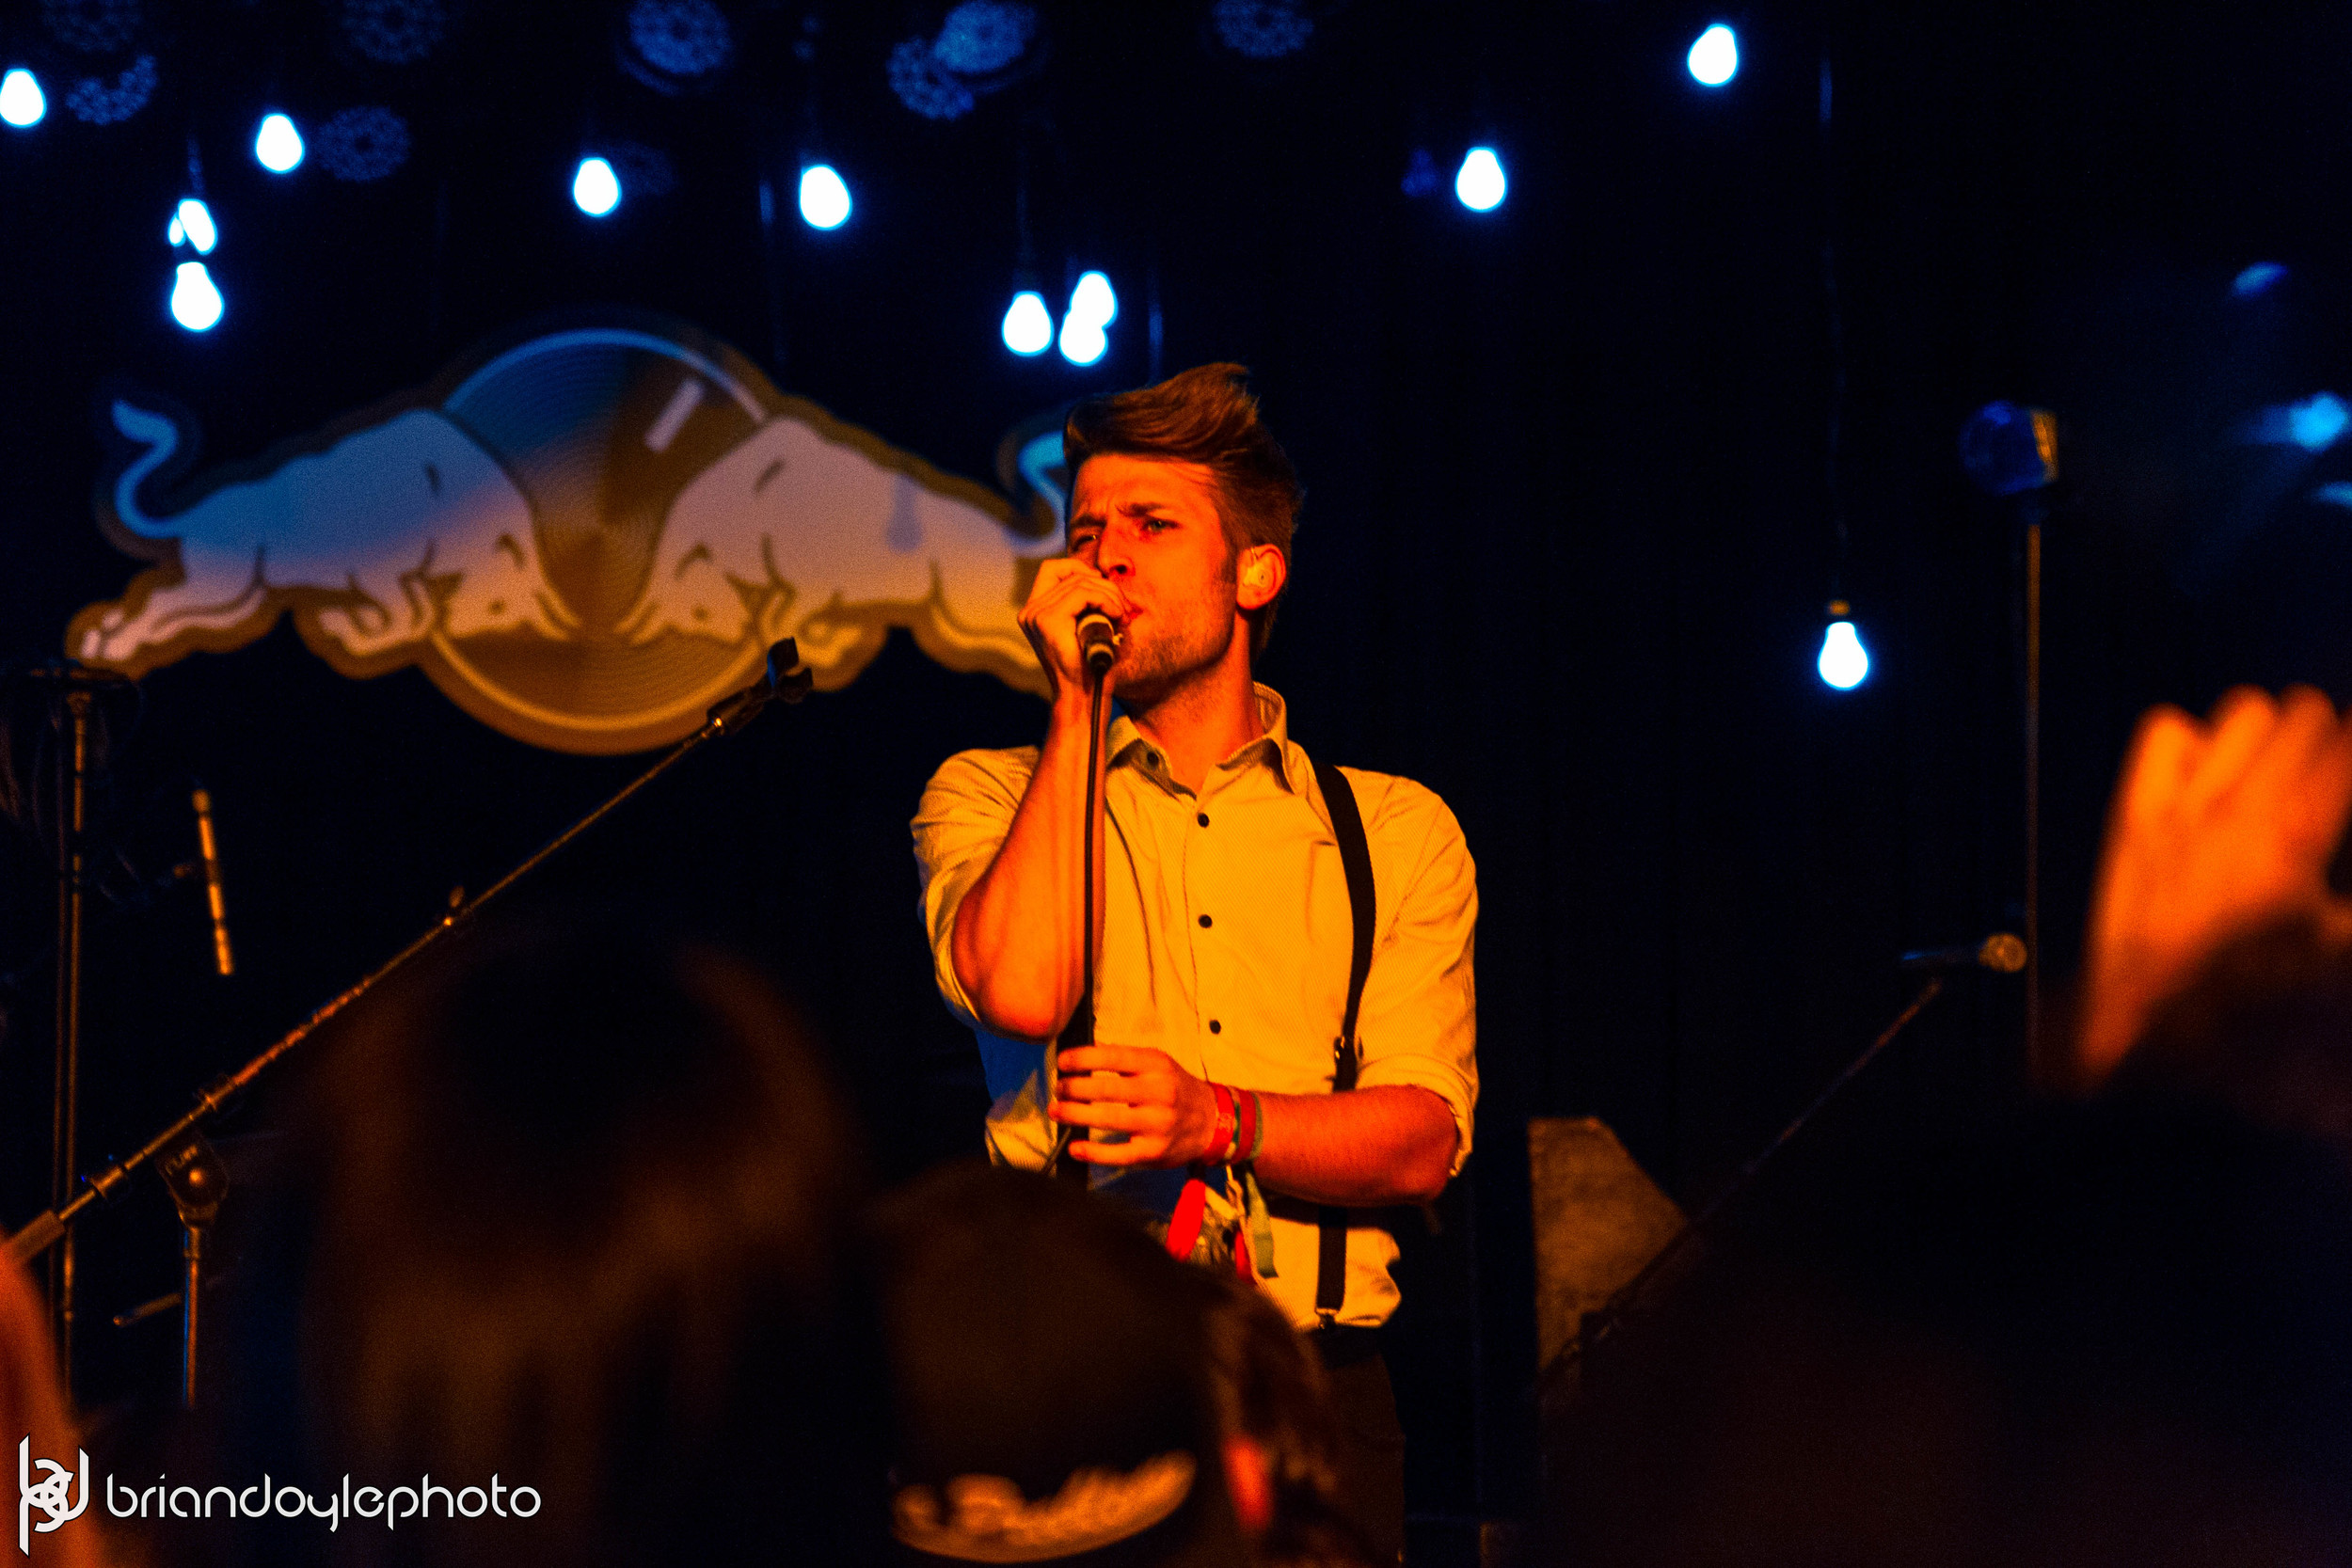 Red Bull - MS MR, Feathers, Electric Sons @ The Roxy 2014.11.02 -16.jpg